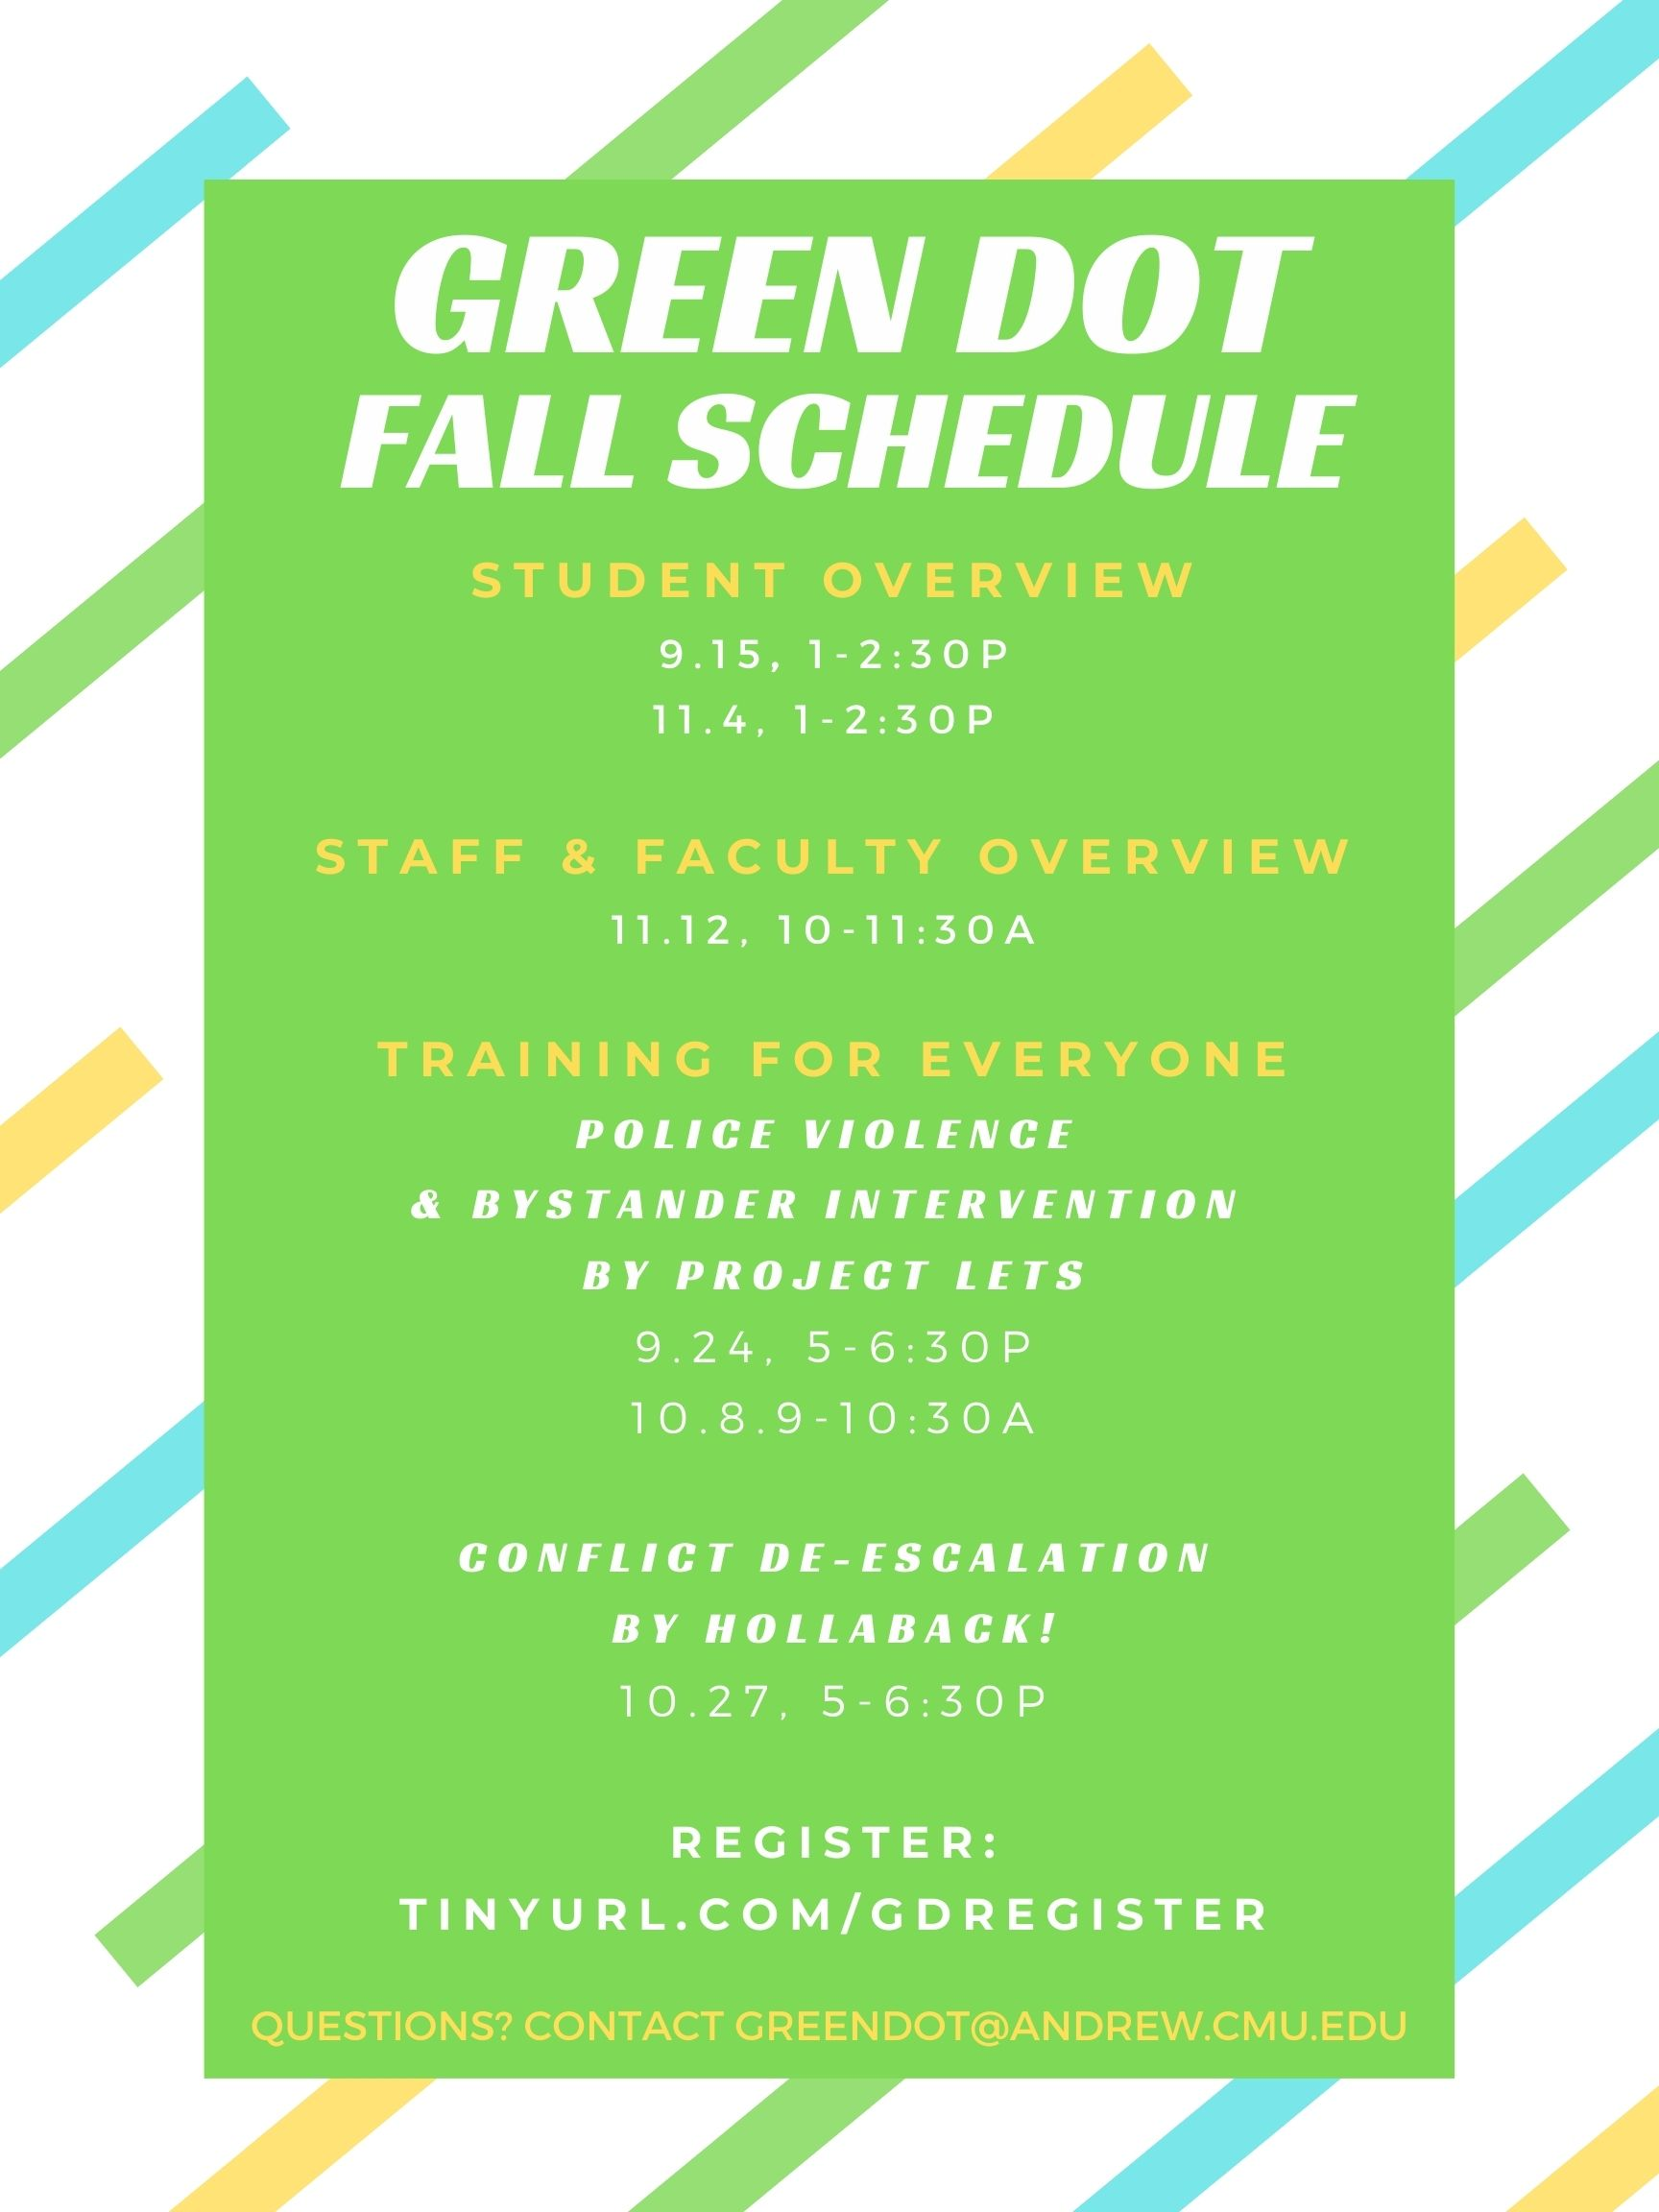 Flyer for Green Dot fall schedule